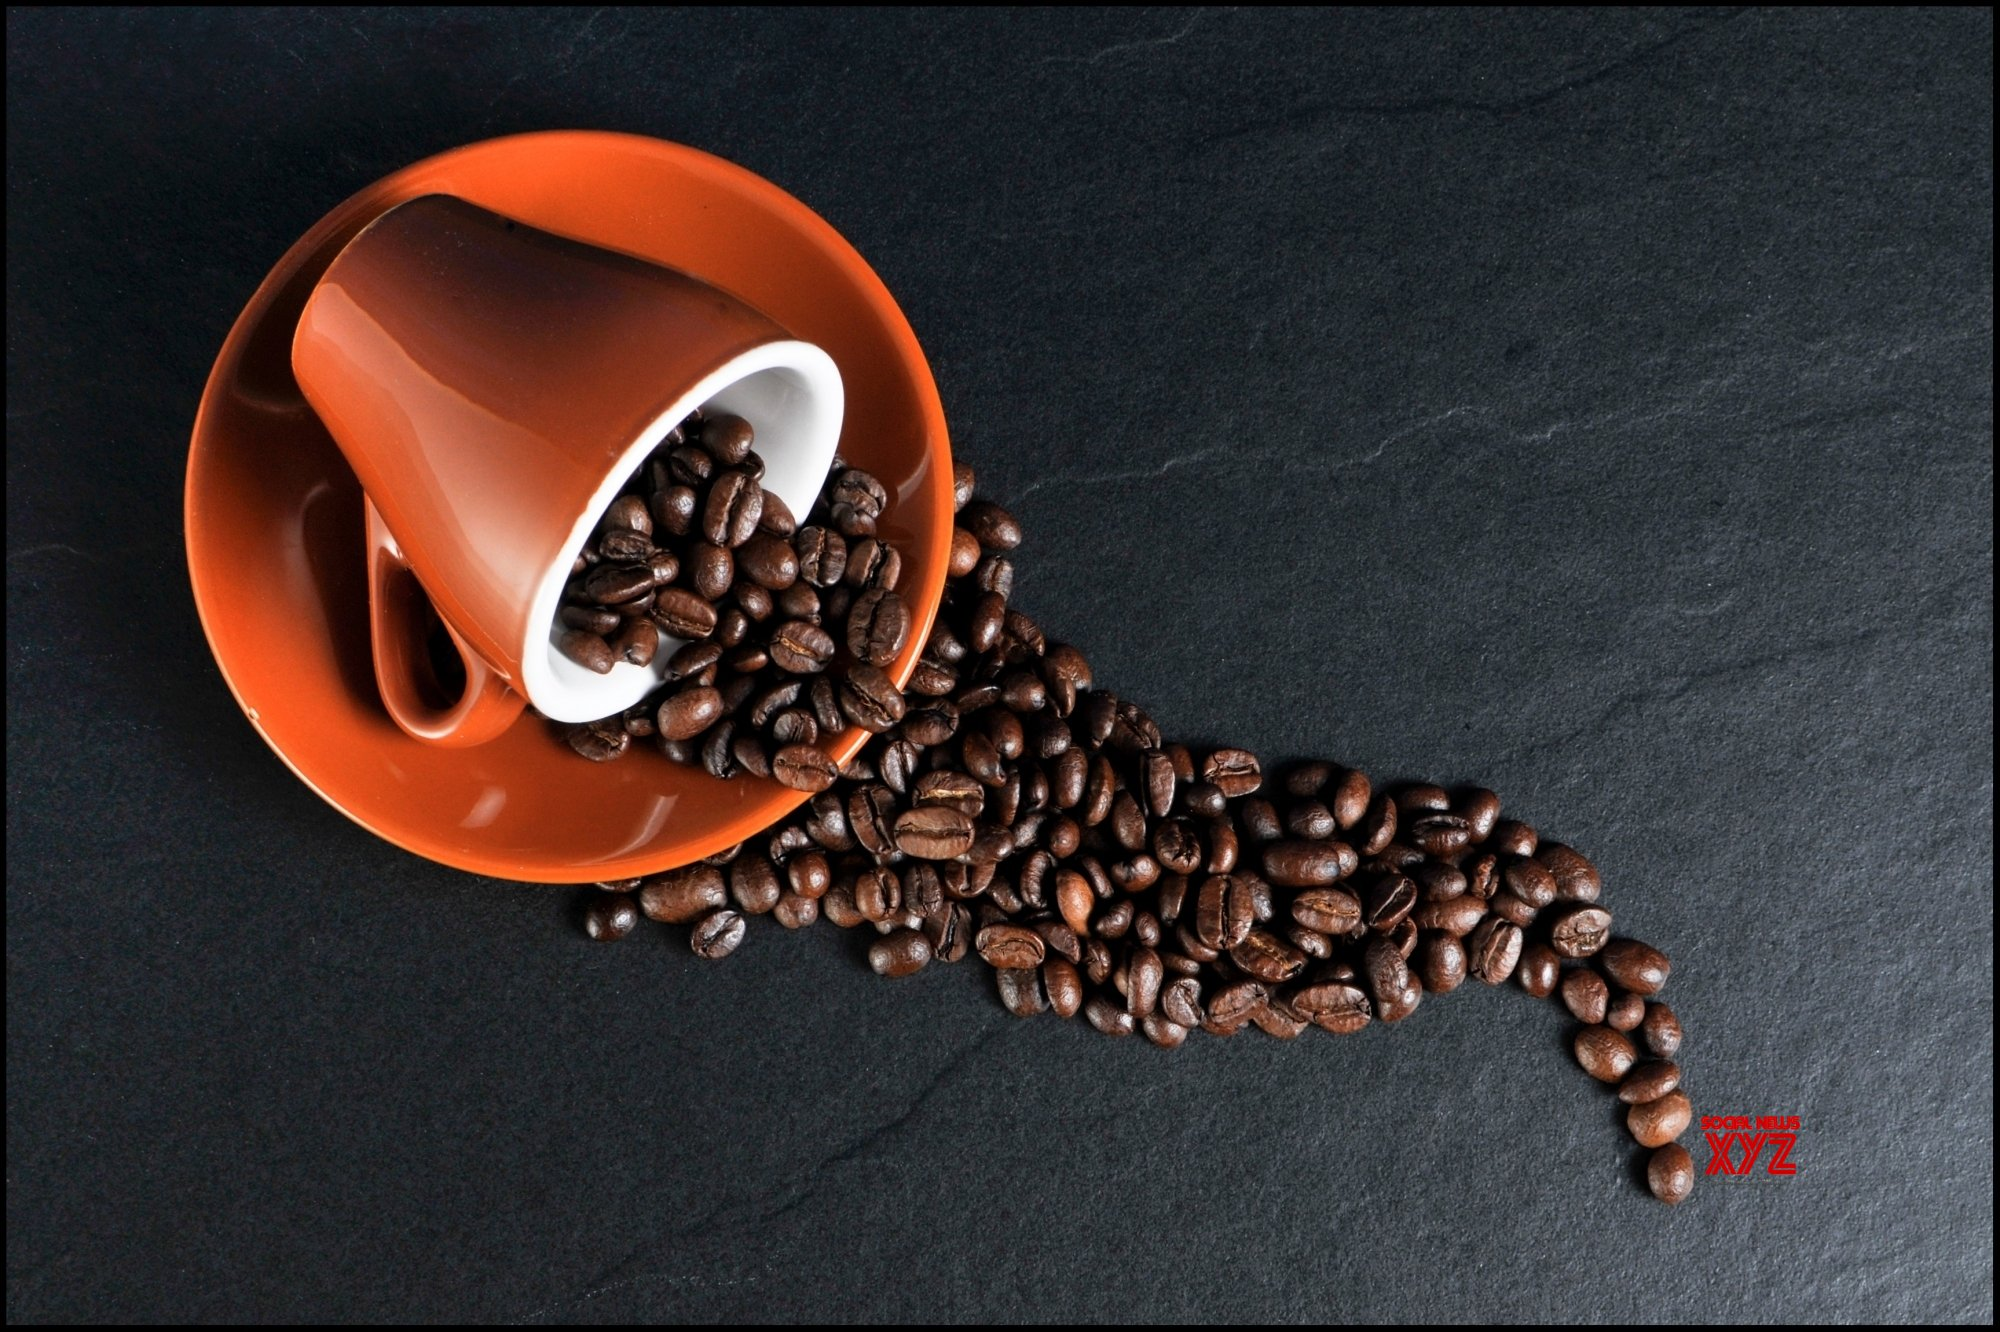 Drinking coffee may reduce heart disease risk